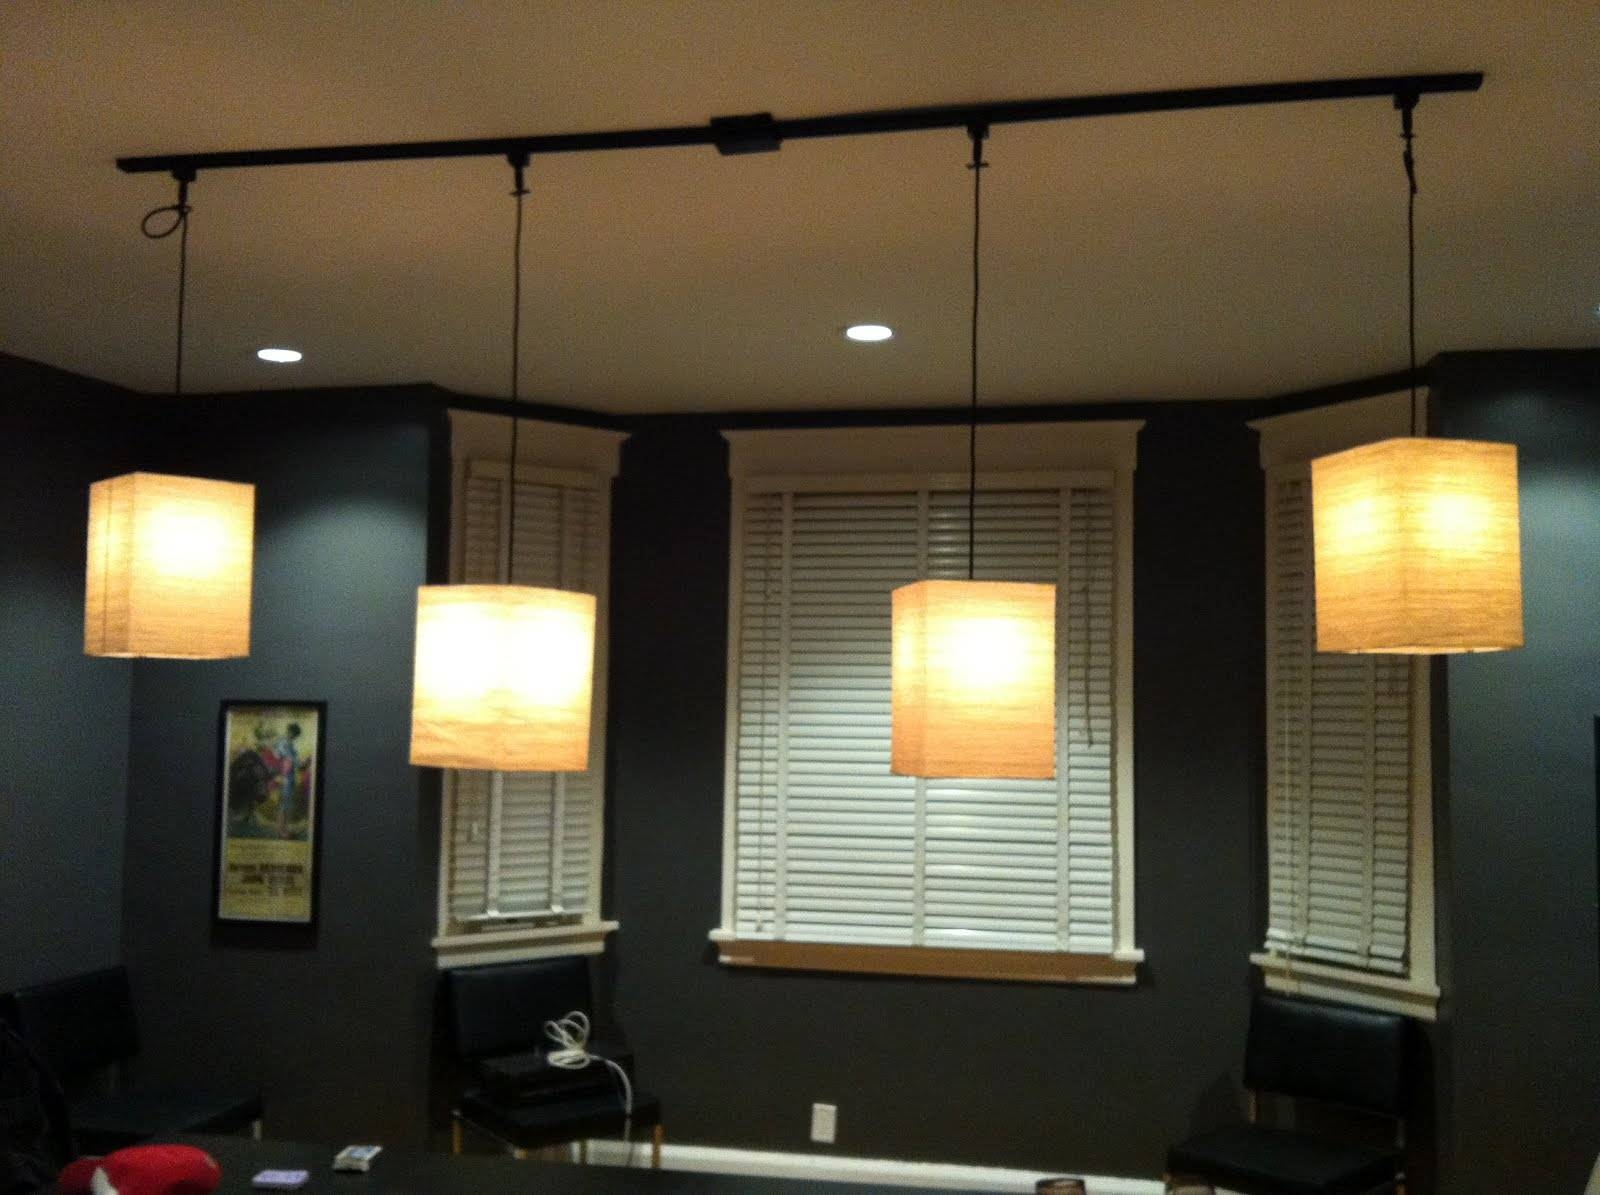 Track Lighting Pendants Design — All About Home Design : Track pertaining to Pendant Lighting for Track Systems (Image 15 of 15)